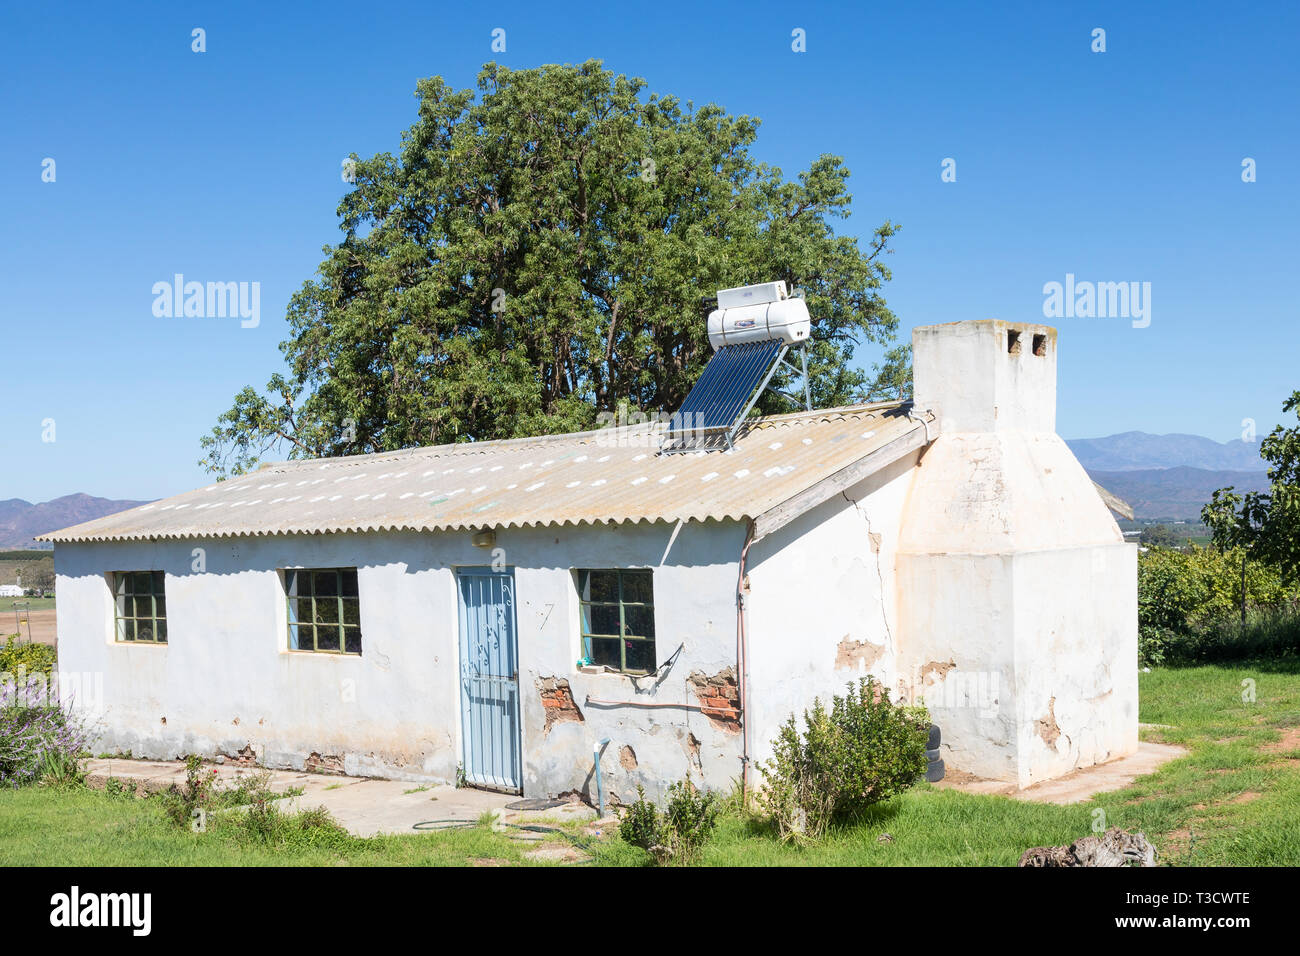 Farmworkers cottage with small roof mounted solar hot water geyser and photovoltaic panel, natural resource, renewable, sustainable, power, energy, he - Stock Image